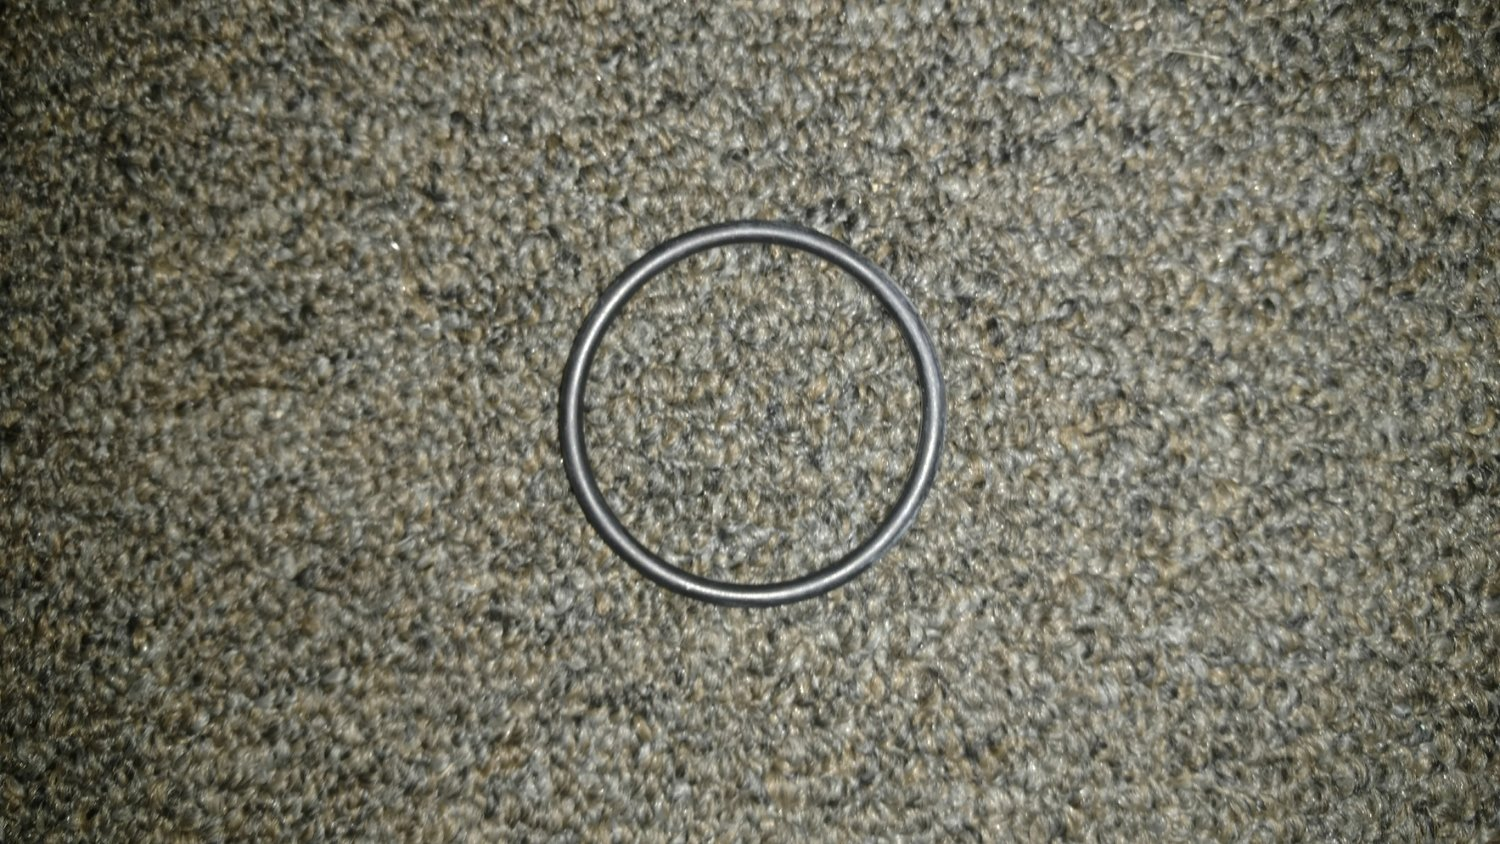 600-0865, O-RING UNION 1-1/2 IN GECKO